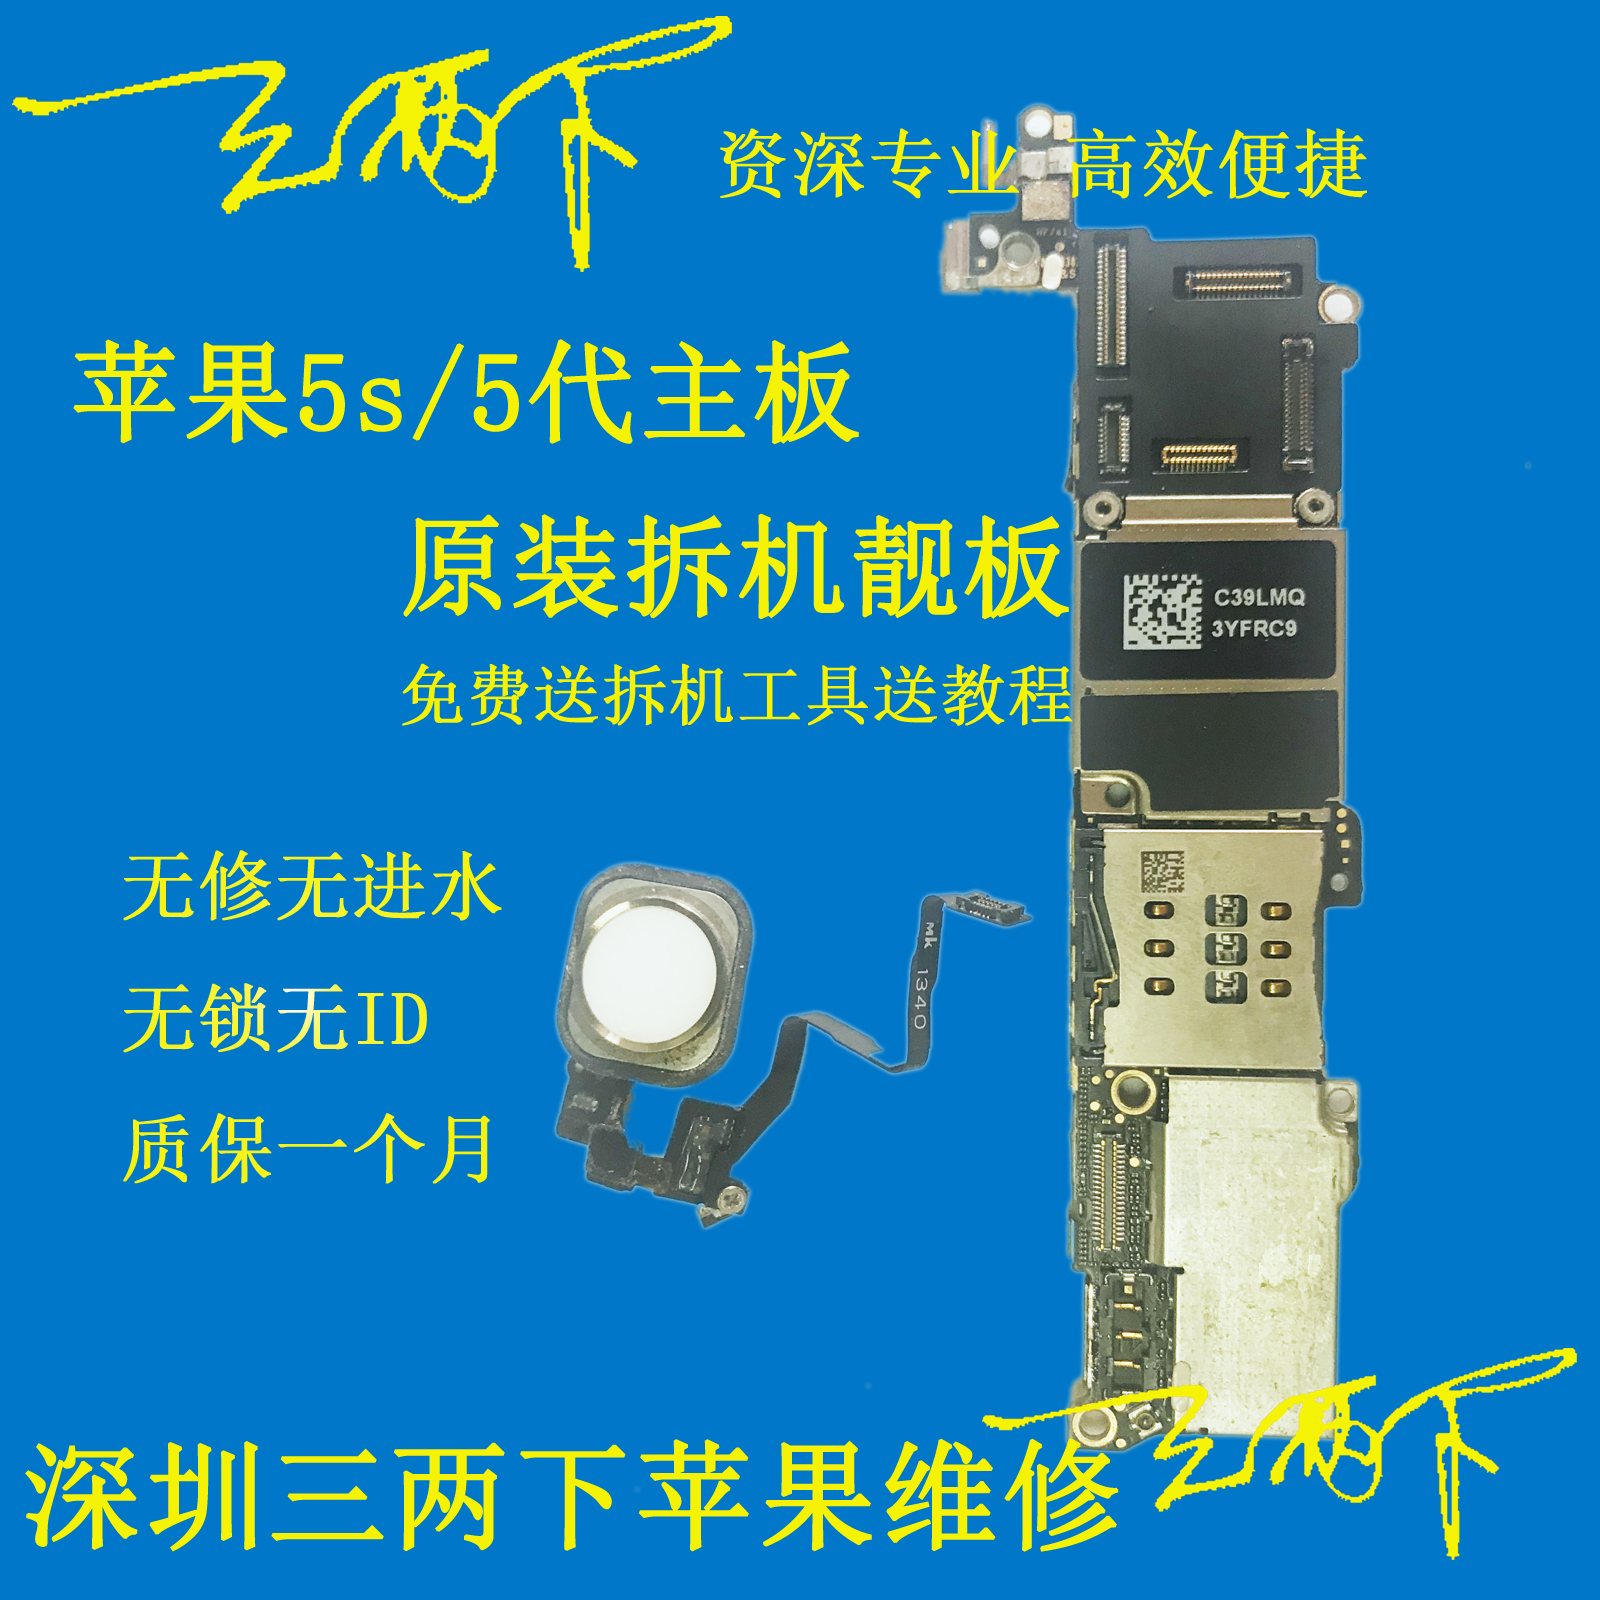 Apple 5S motherboard original 5S 5S 5S SE dismantling machine without ID lock Guohang 6 port version A1530 mobile 4G Unicom dual 4G